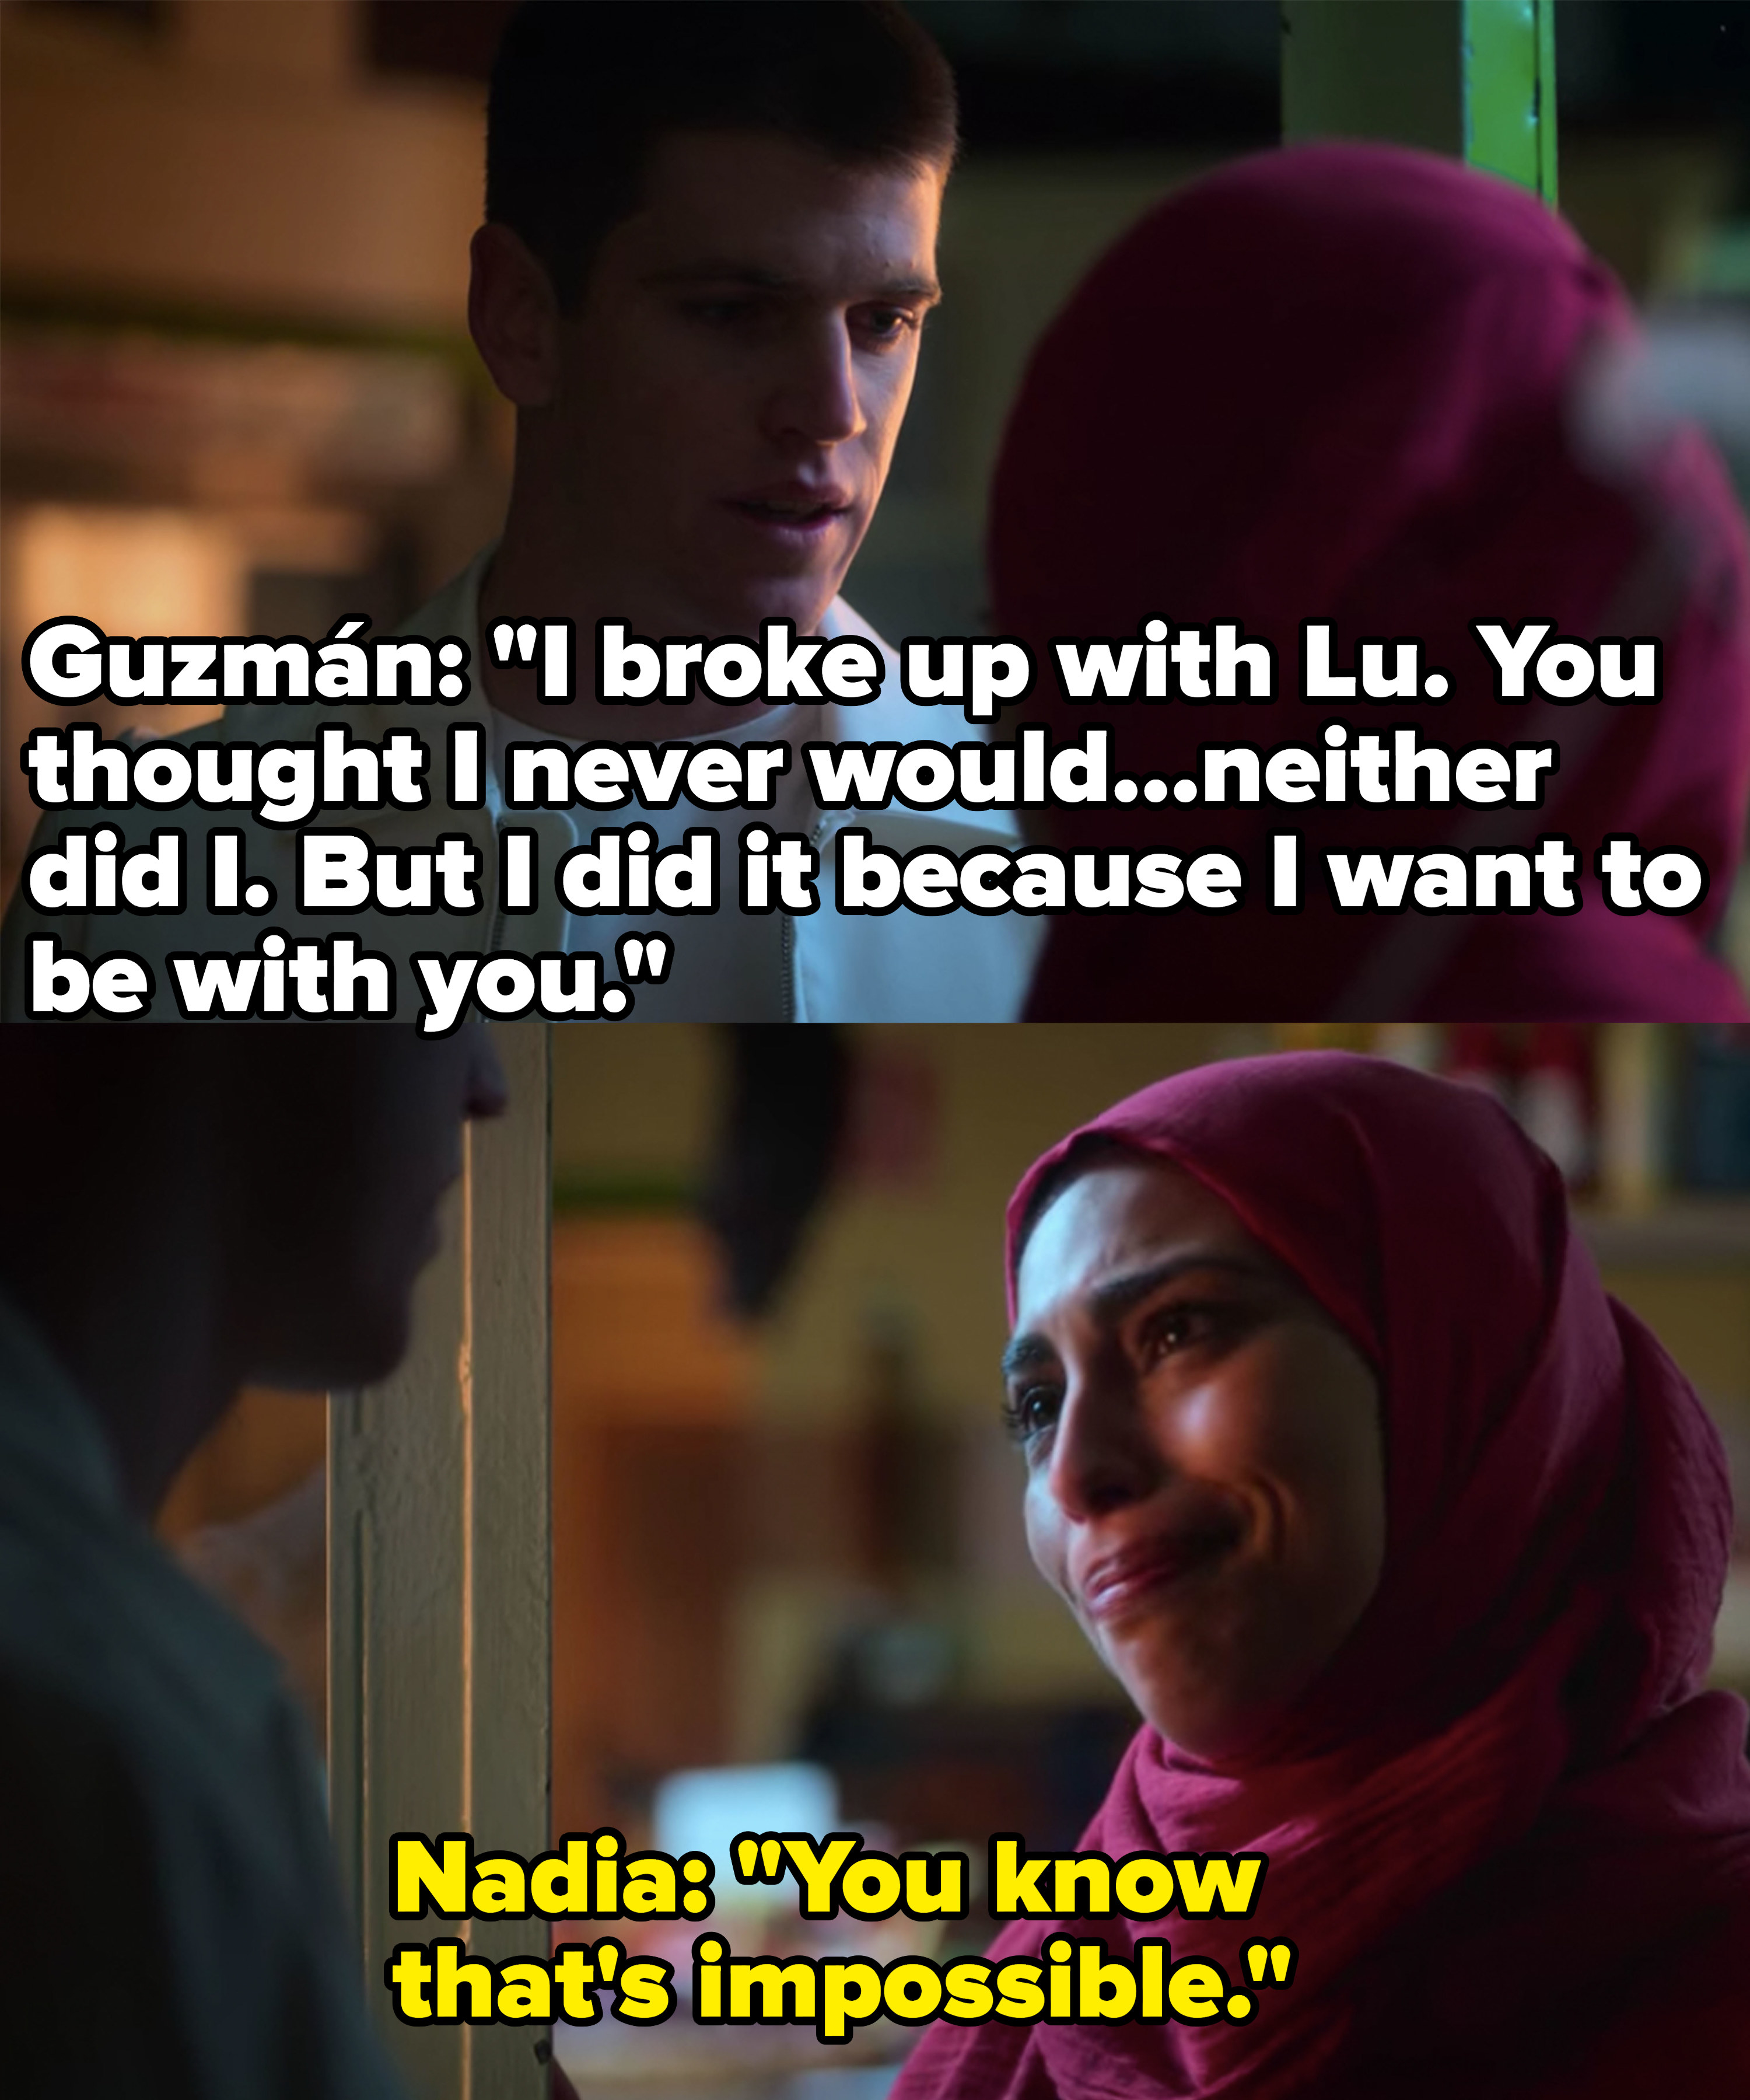 Guzmán tells Nadia he broke up with Lu so they could be together, Nadia says it's impossible